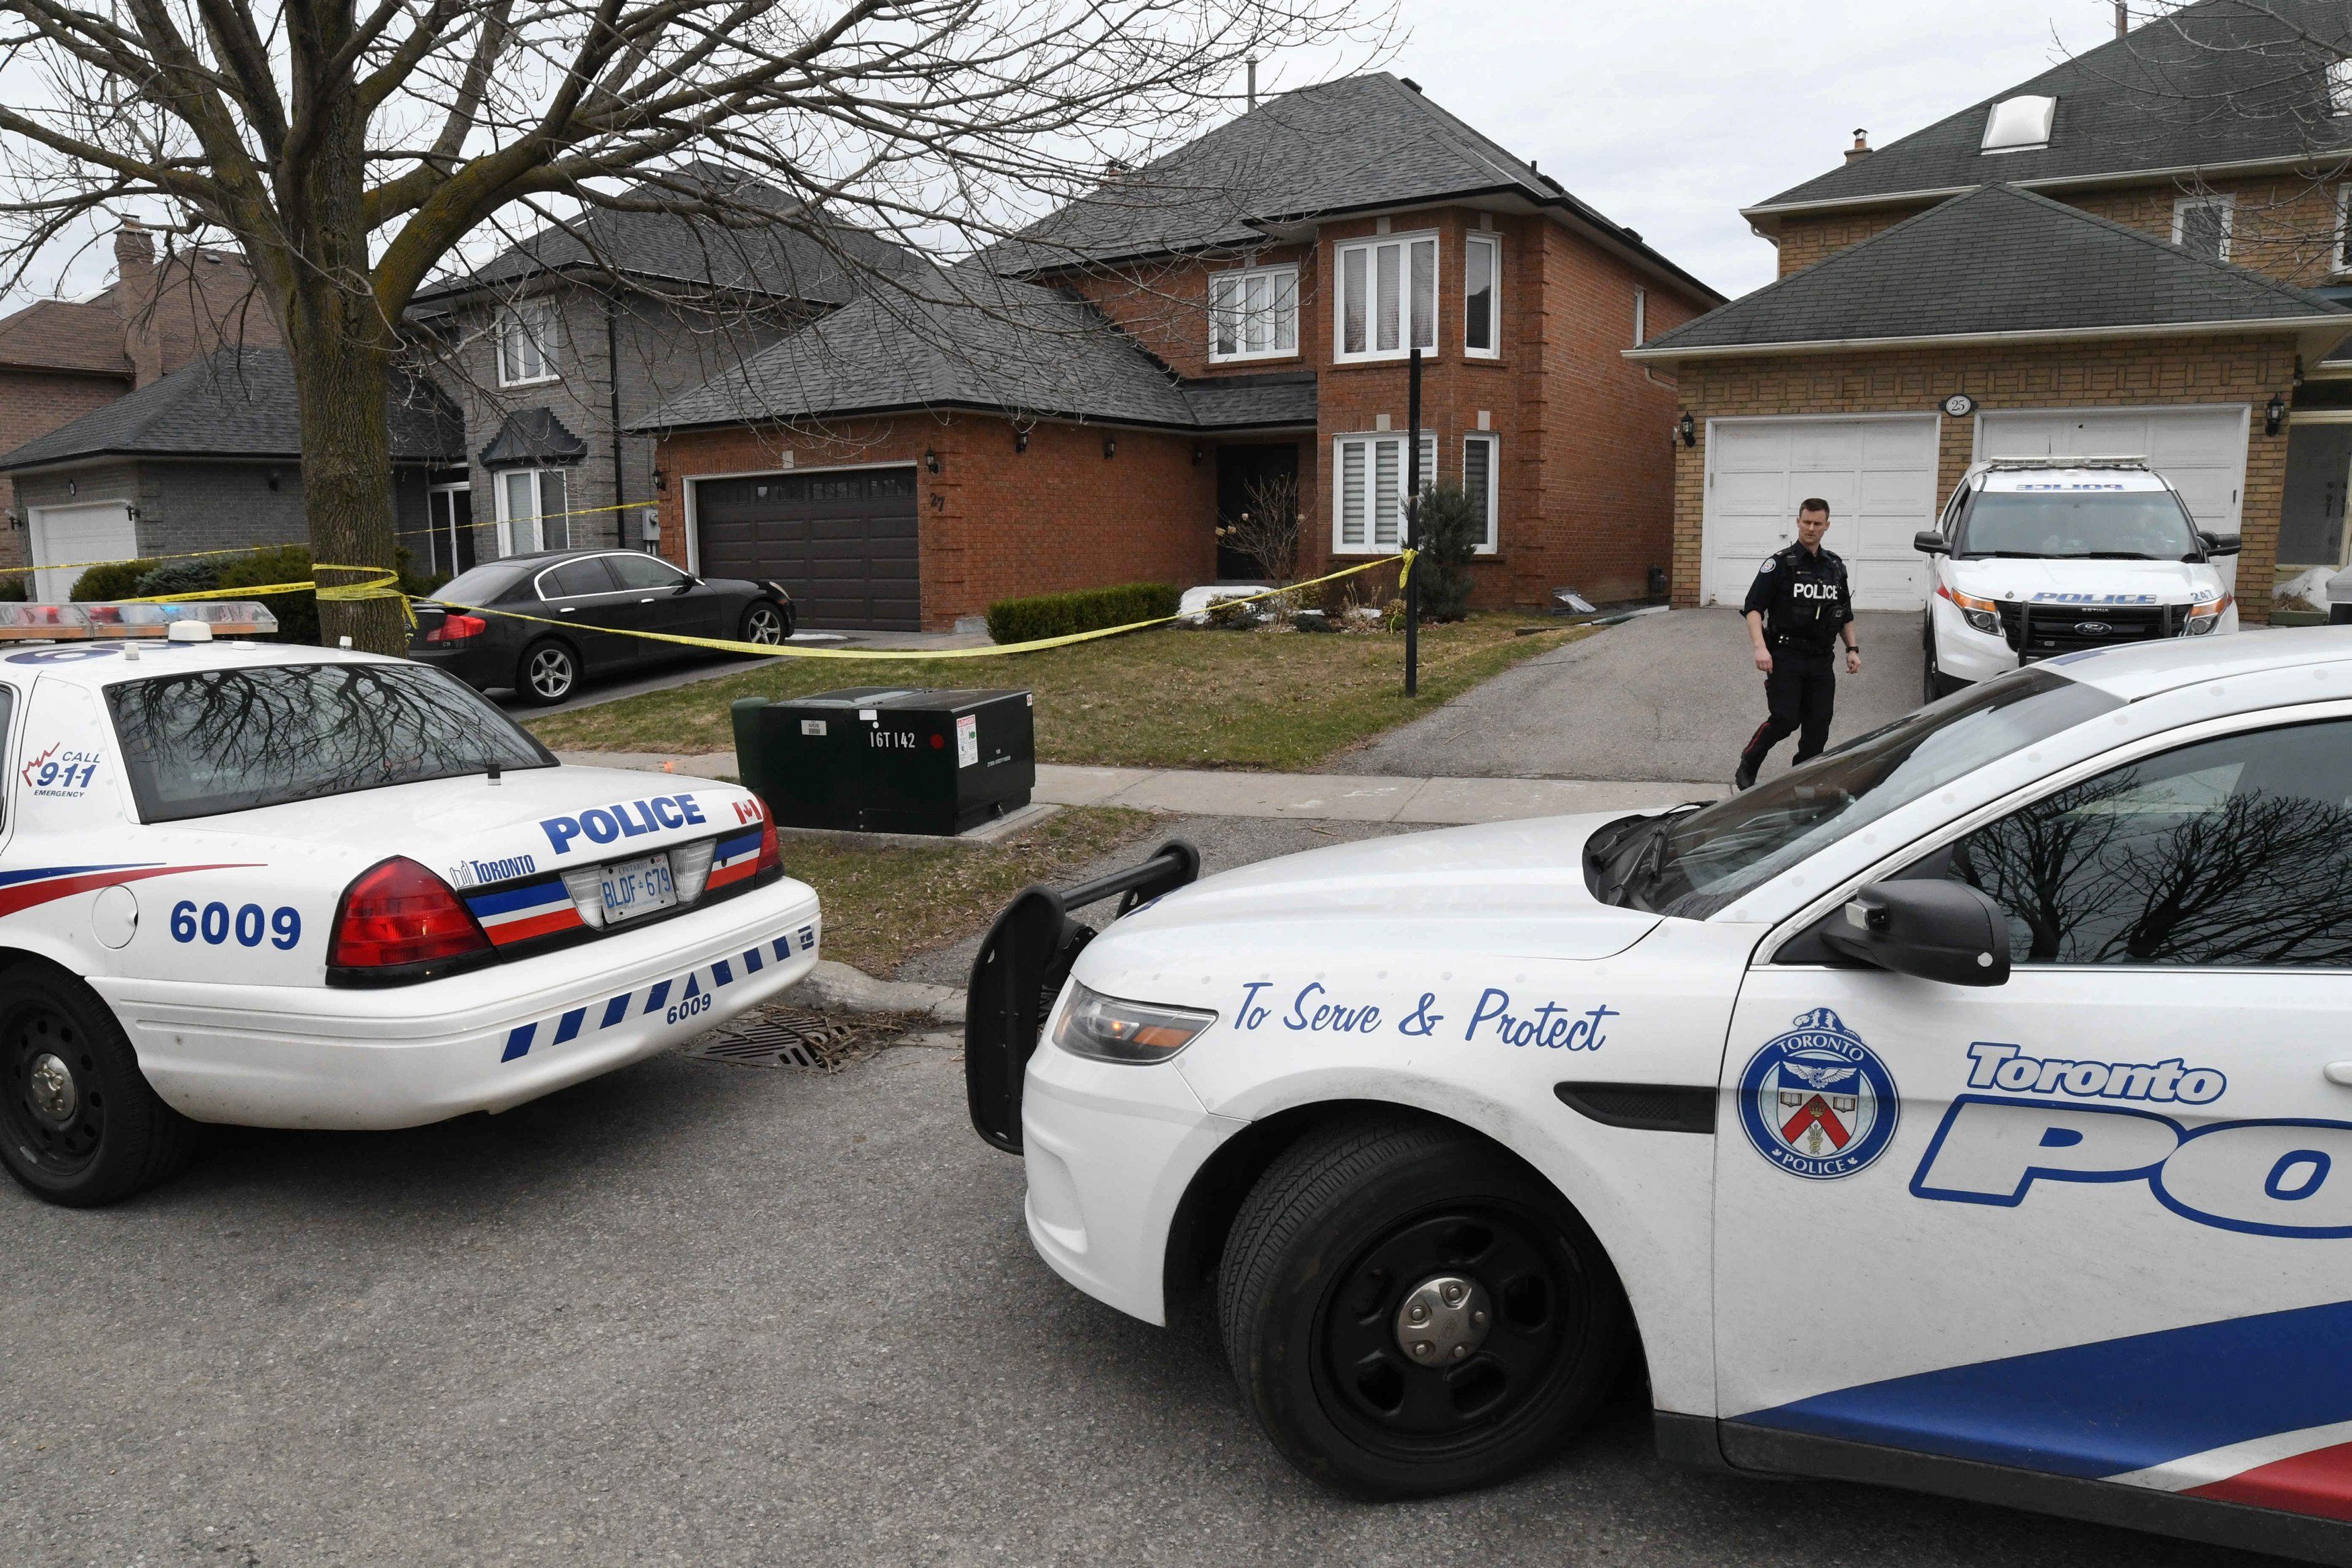 Police vehicles are parked in front of the home of Alek Minassian, a day after multiple people were struck along a major intersection northern Toronto, Ontario, Canada, April 24, 2018.   REUTERS/Saul Porto